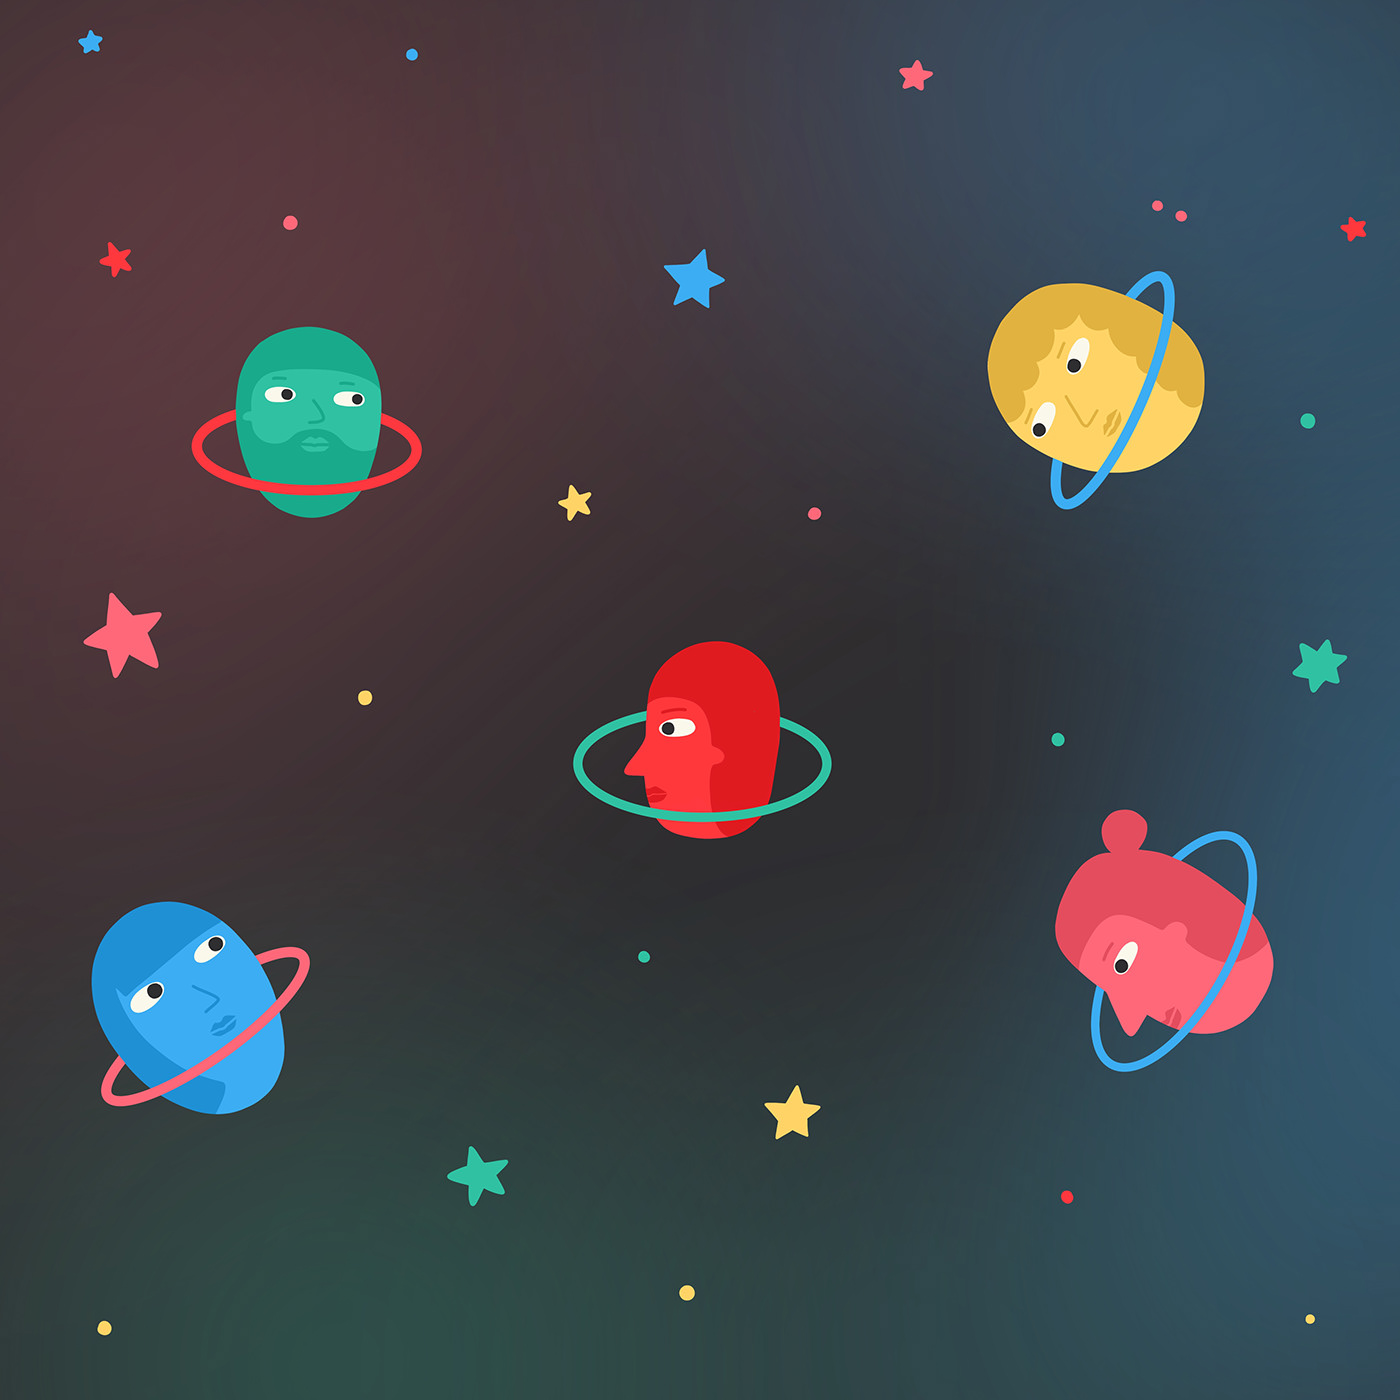 Space  stars people planet family